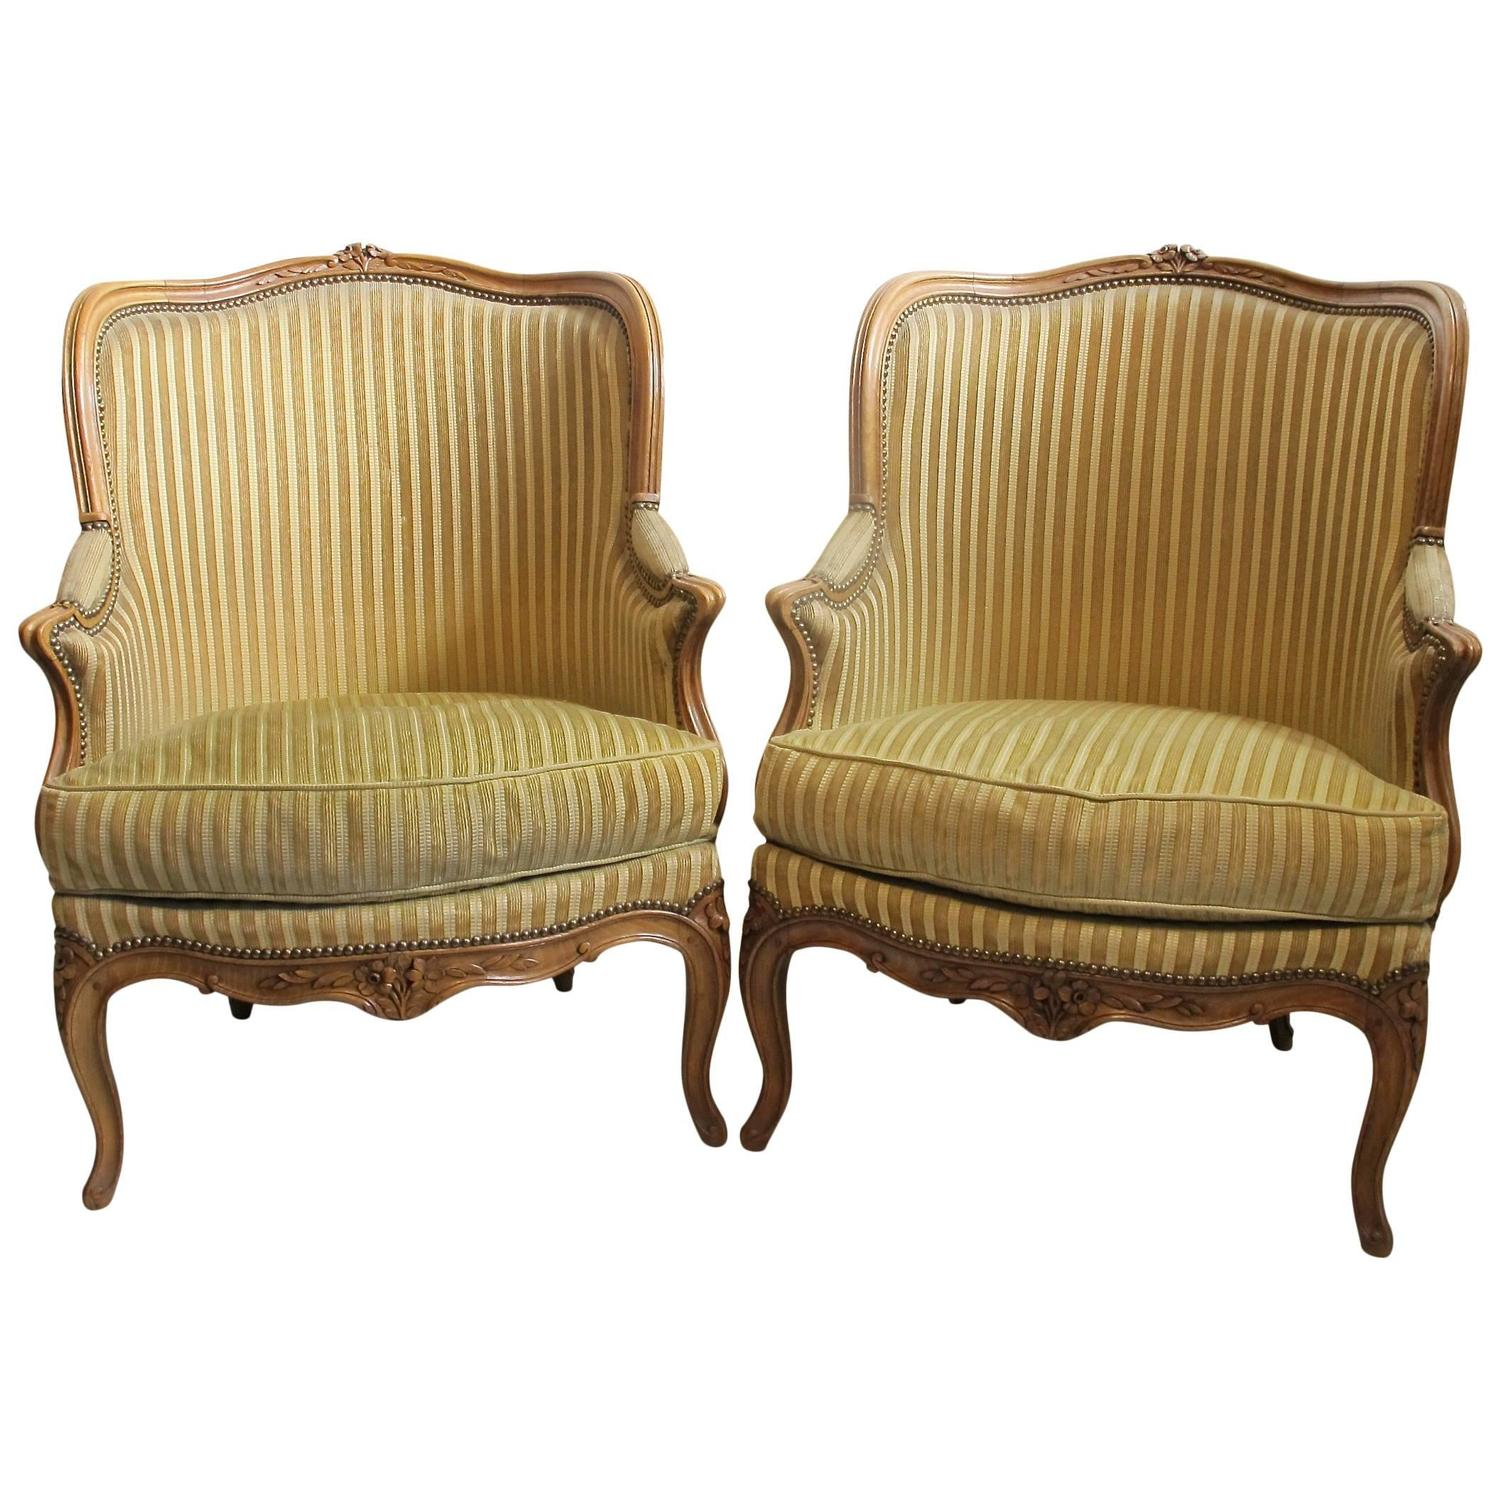 french bergere chair pool noodle chairs at 1stdibs